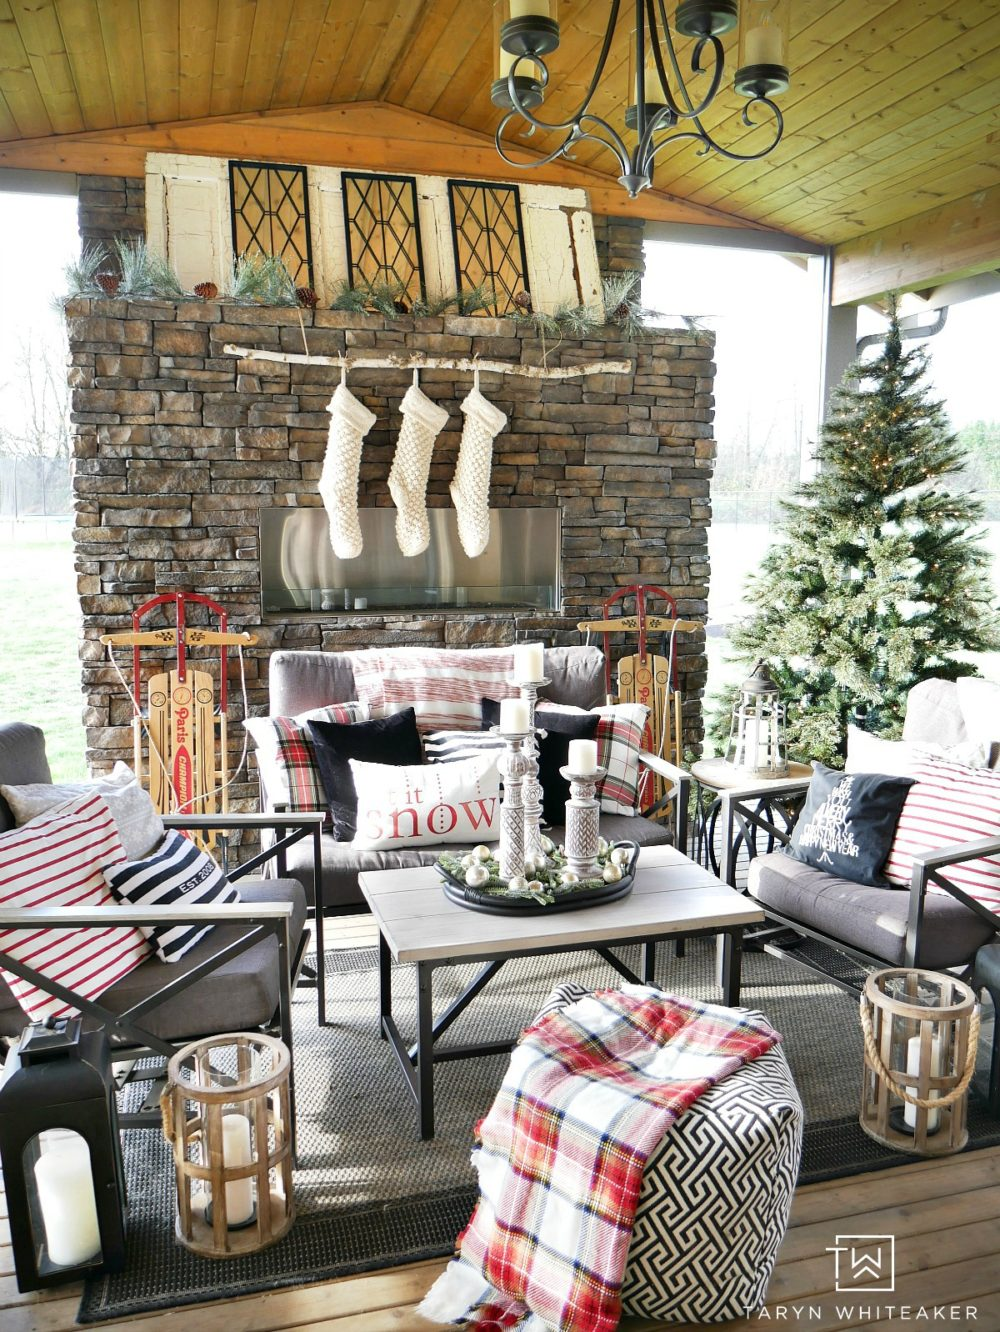 Come see our Outdoor Living Space at Christmas ! It's feeling oh so cozy with it's own Christmas tree, stockings and lots of plaid!